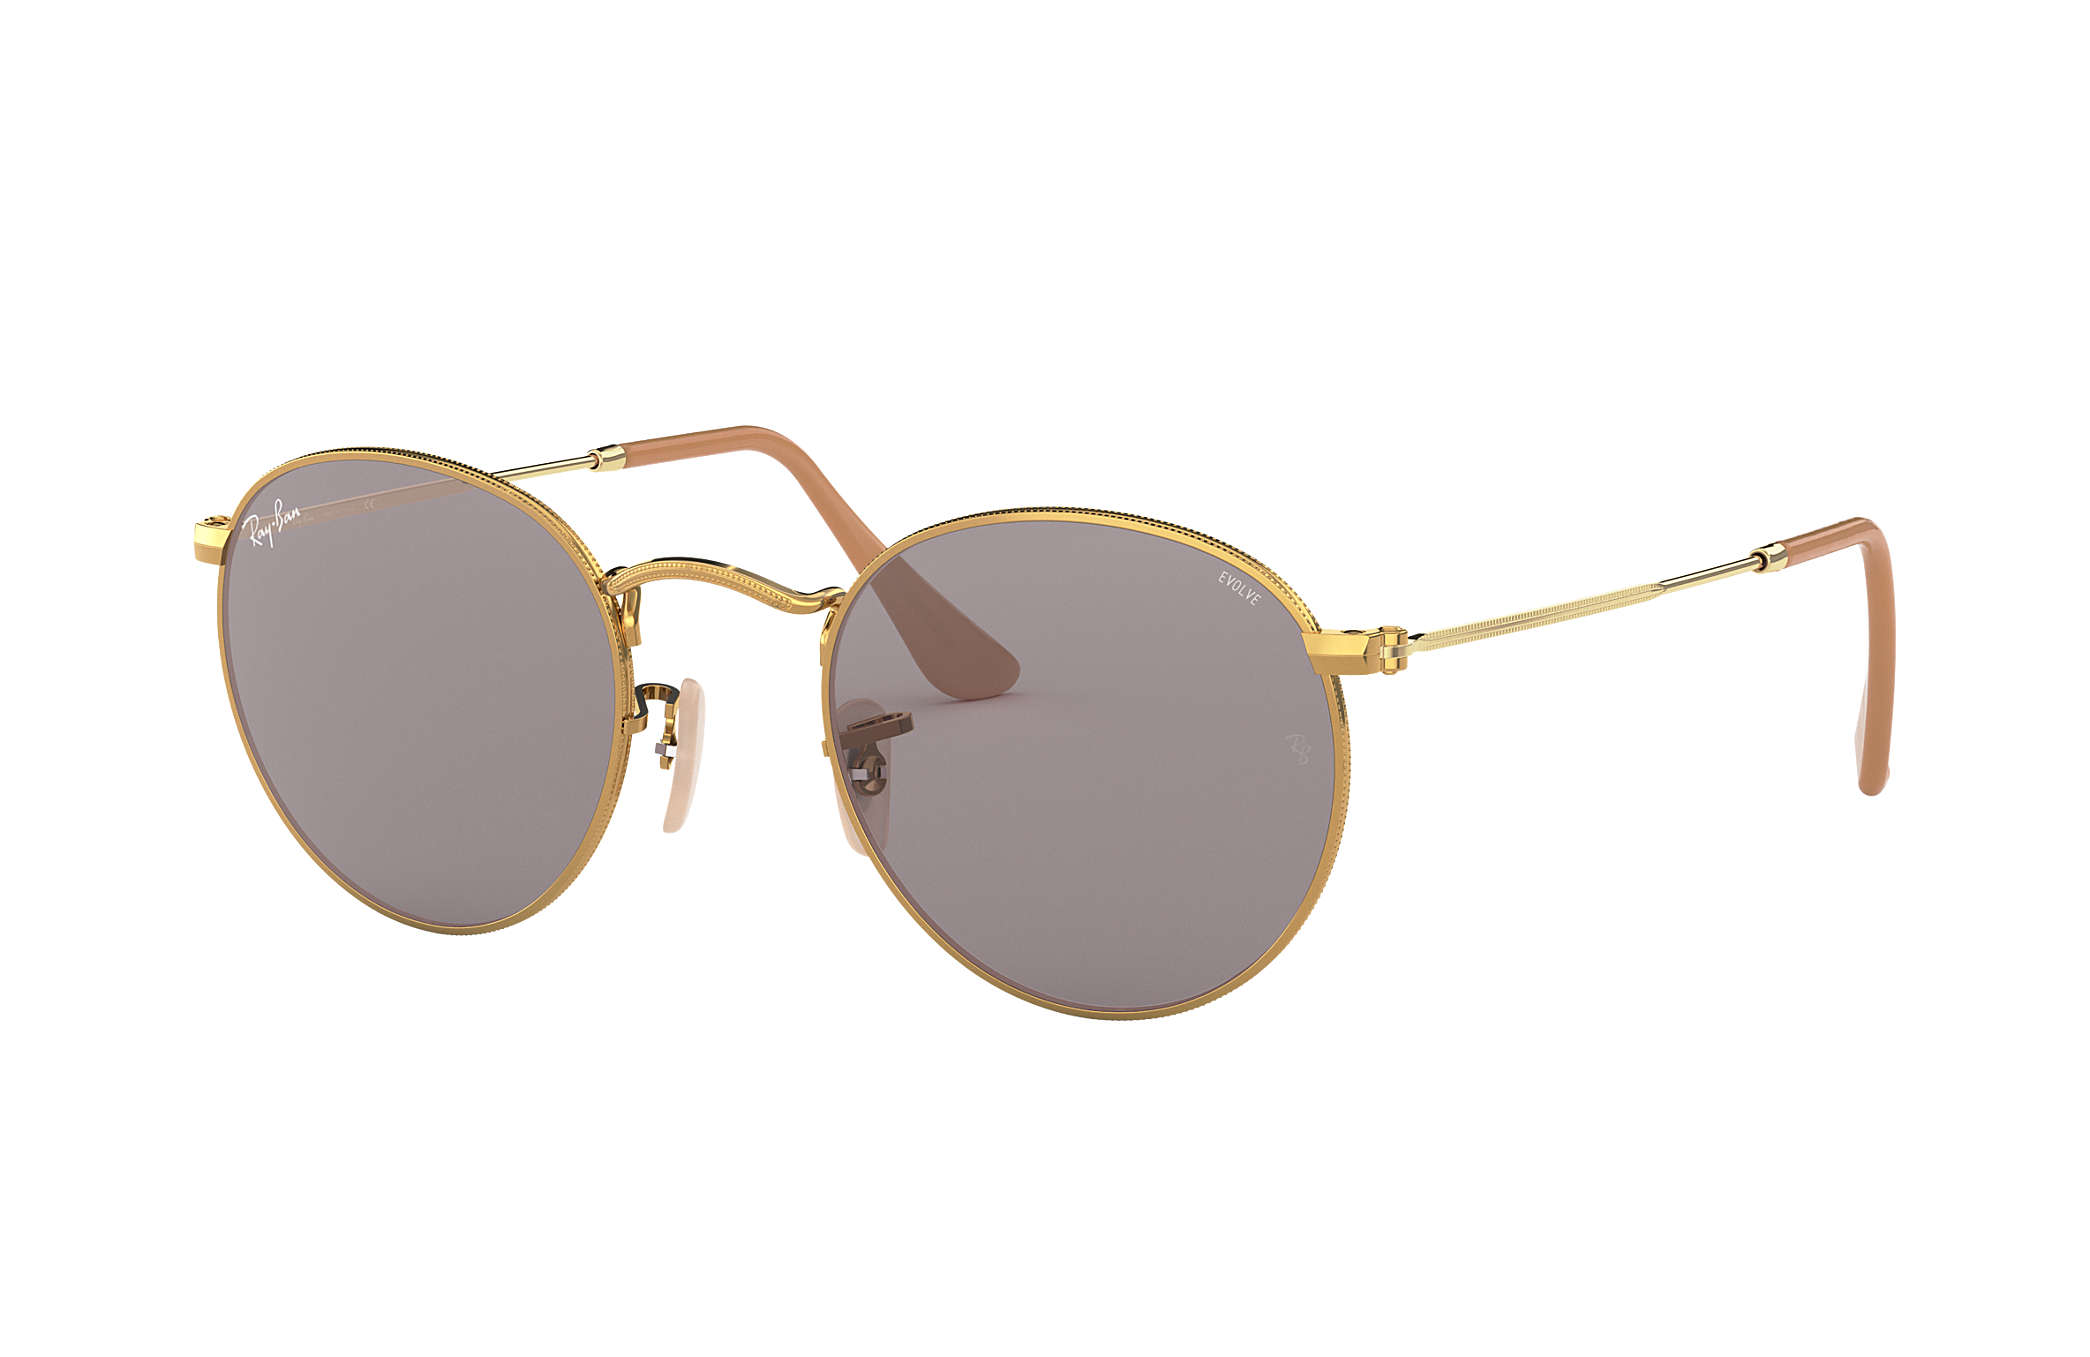 Ray-Ban Round Evolve RB3447 Gold - Metal - Grey Lenses ... 75fcbba147